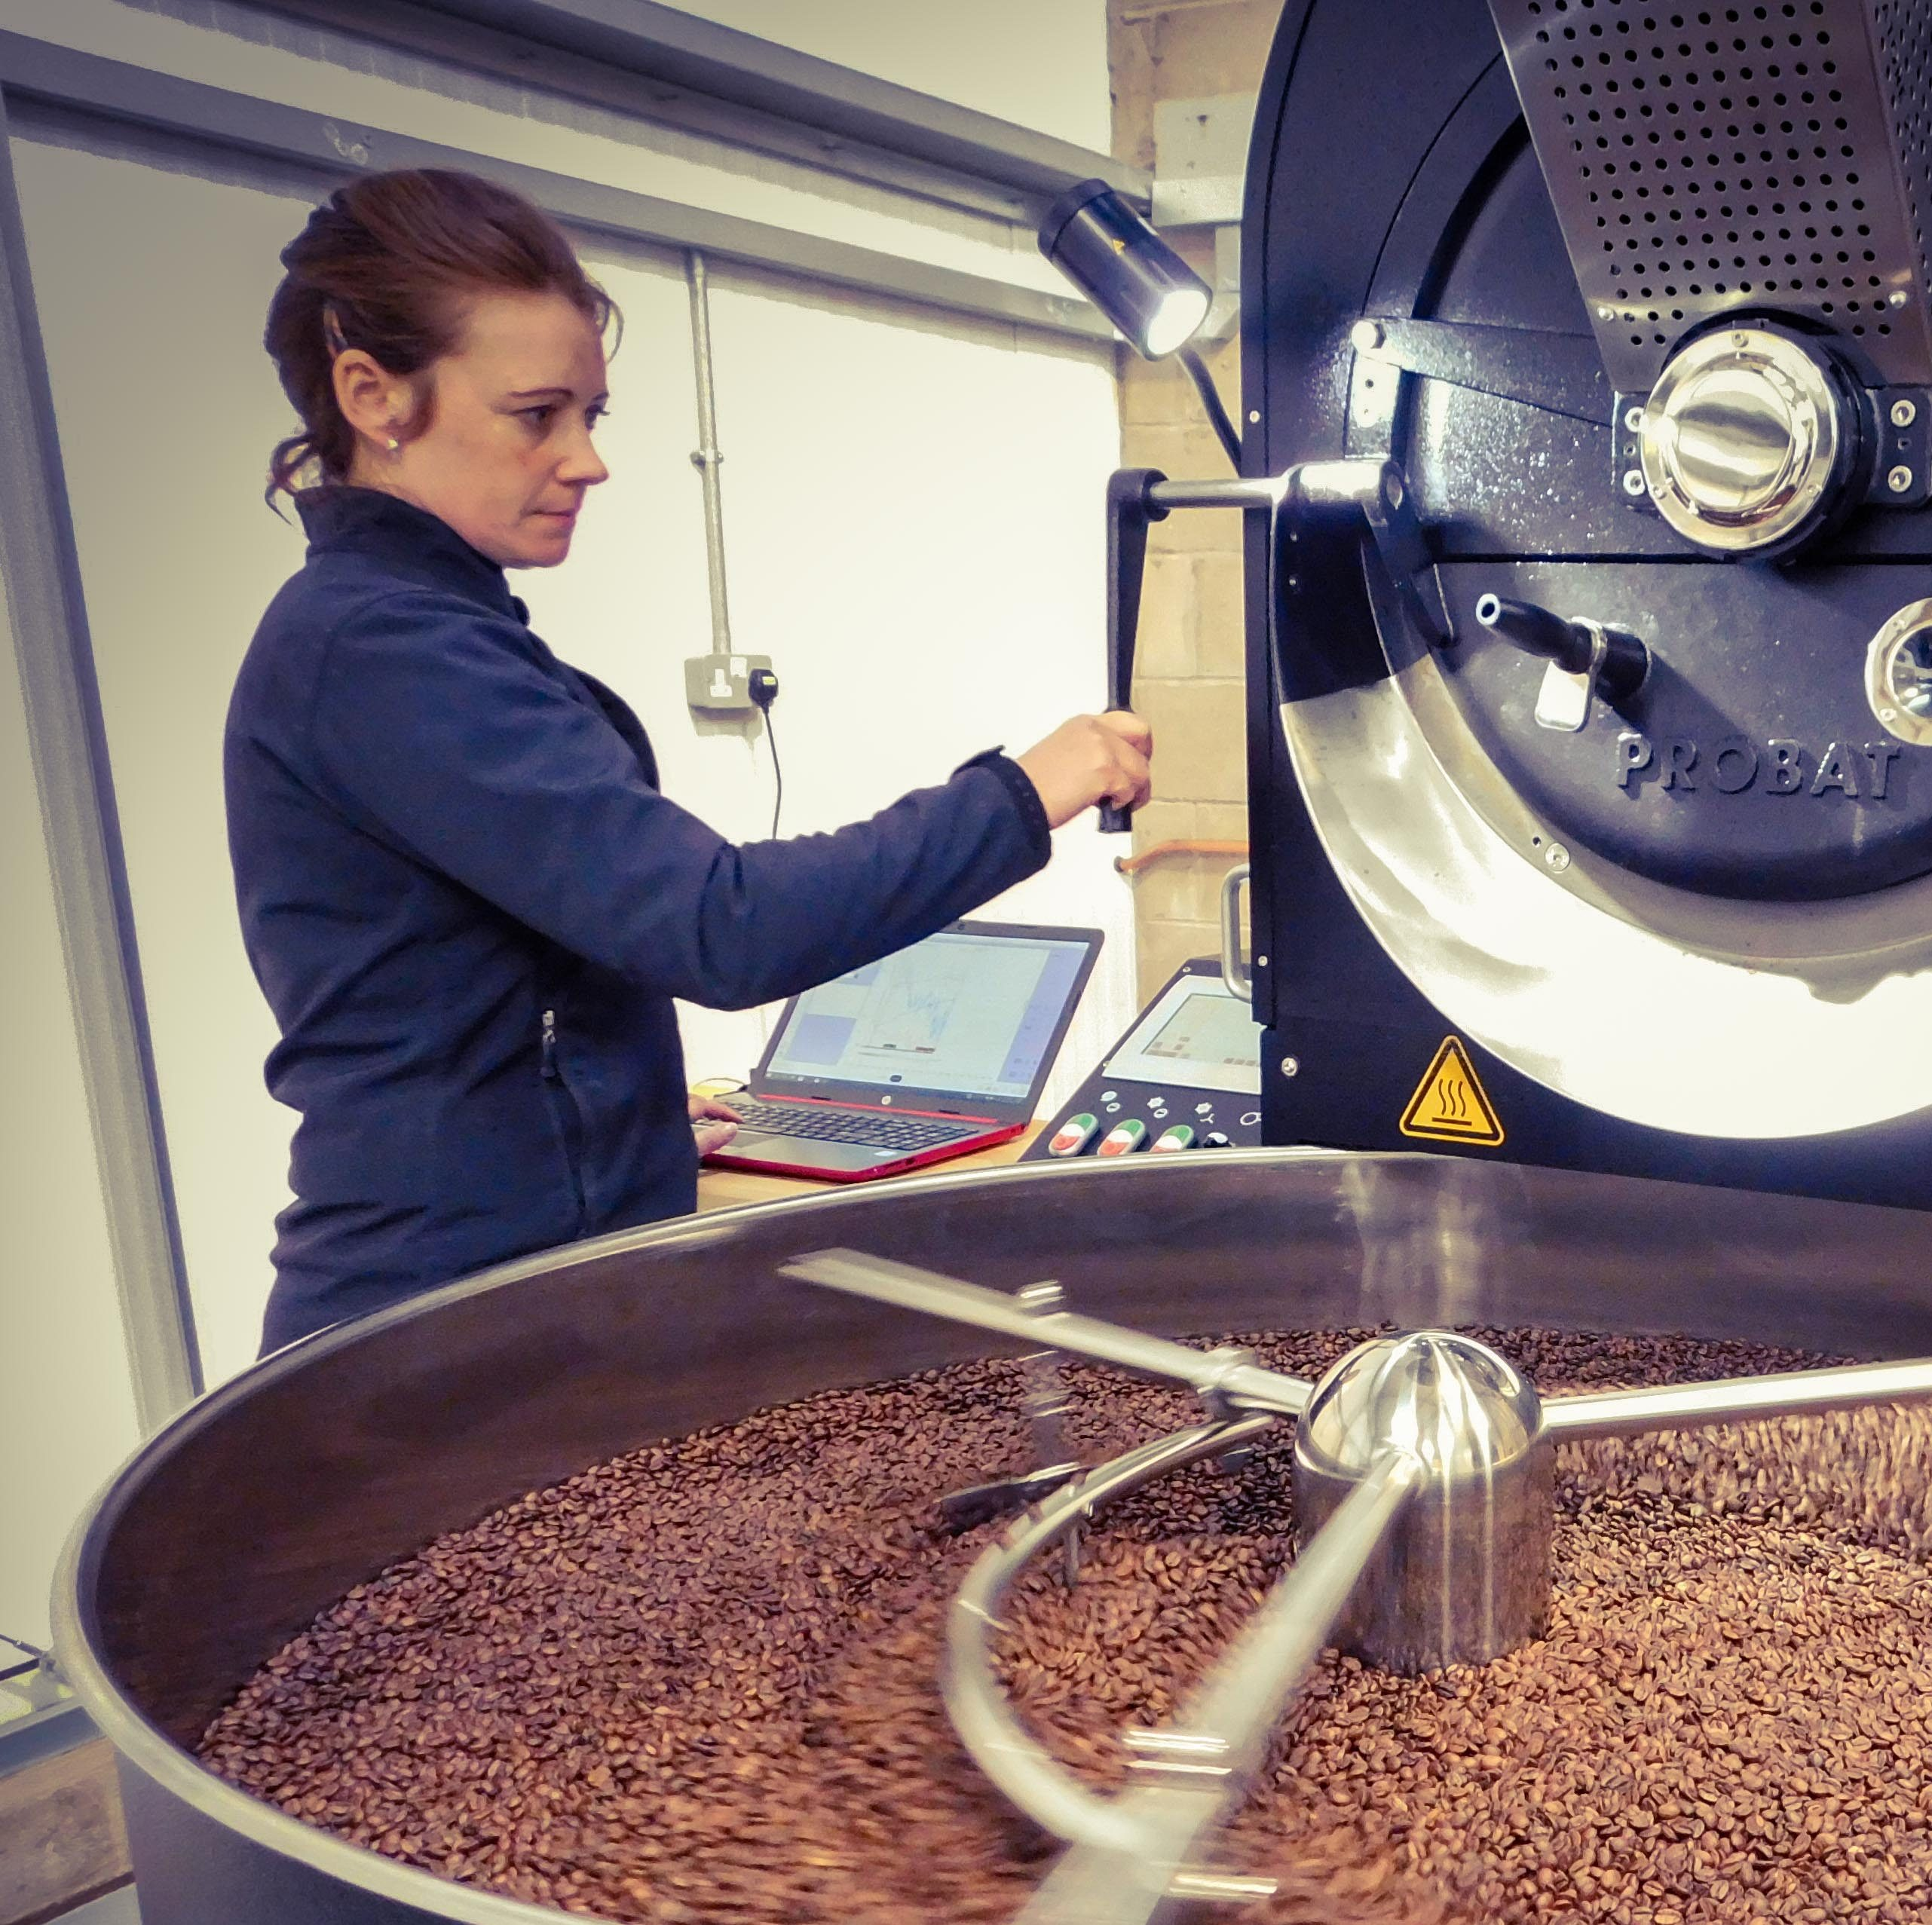 Episode 2: Coffee with Angharad MacDonald, owner and Head Roaster at Carvetii Coffee via @carvetiicoffee